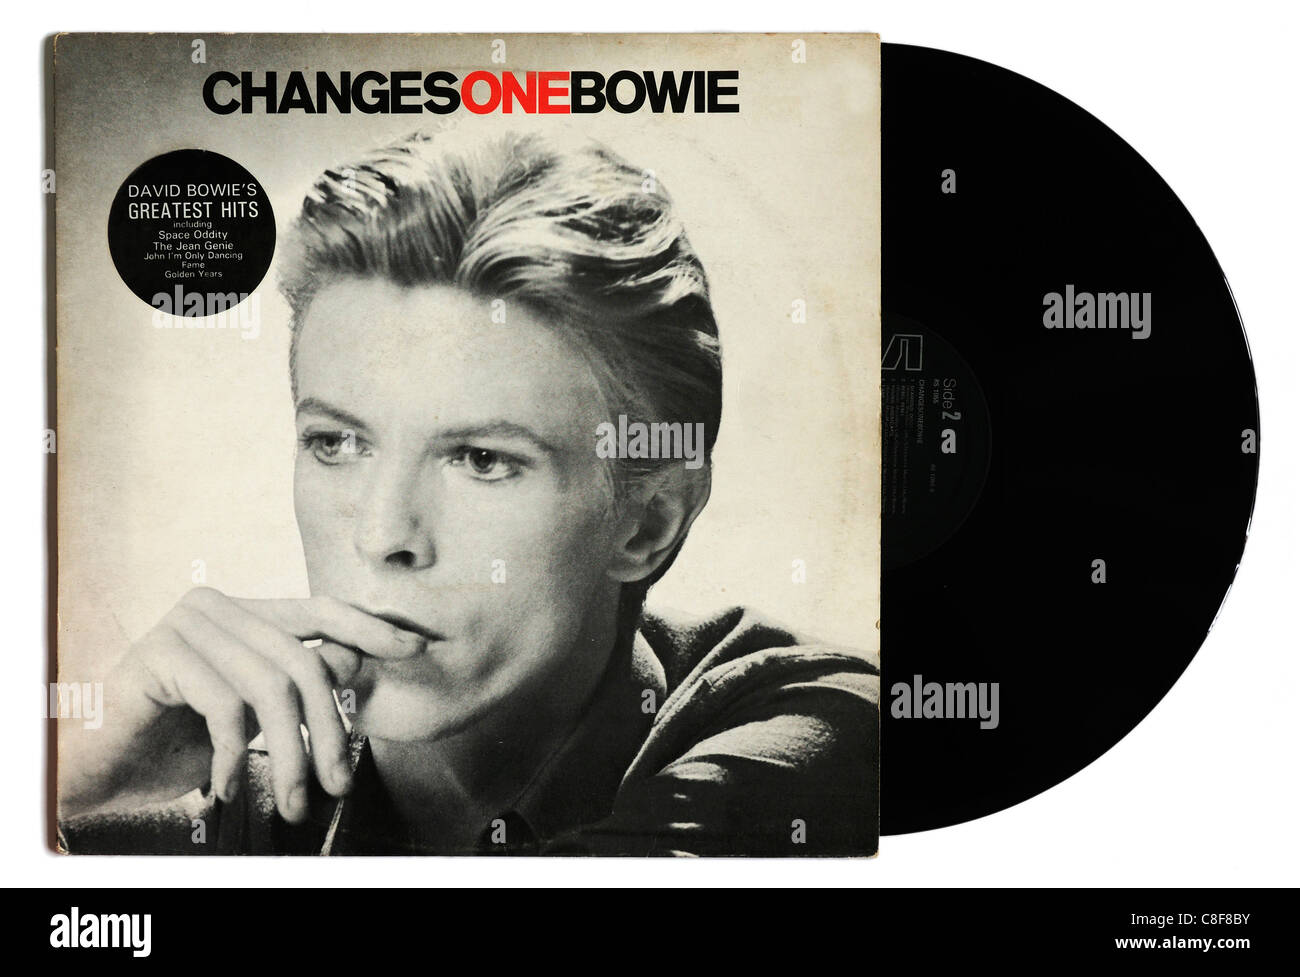 David Bowie Changes One album - Stock Image